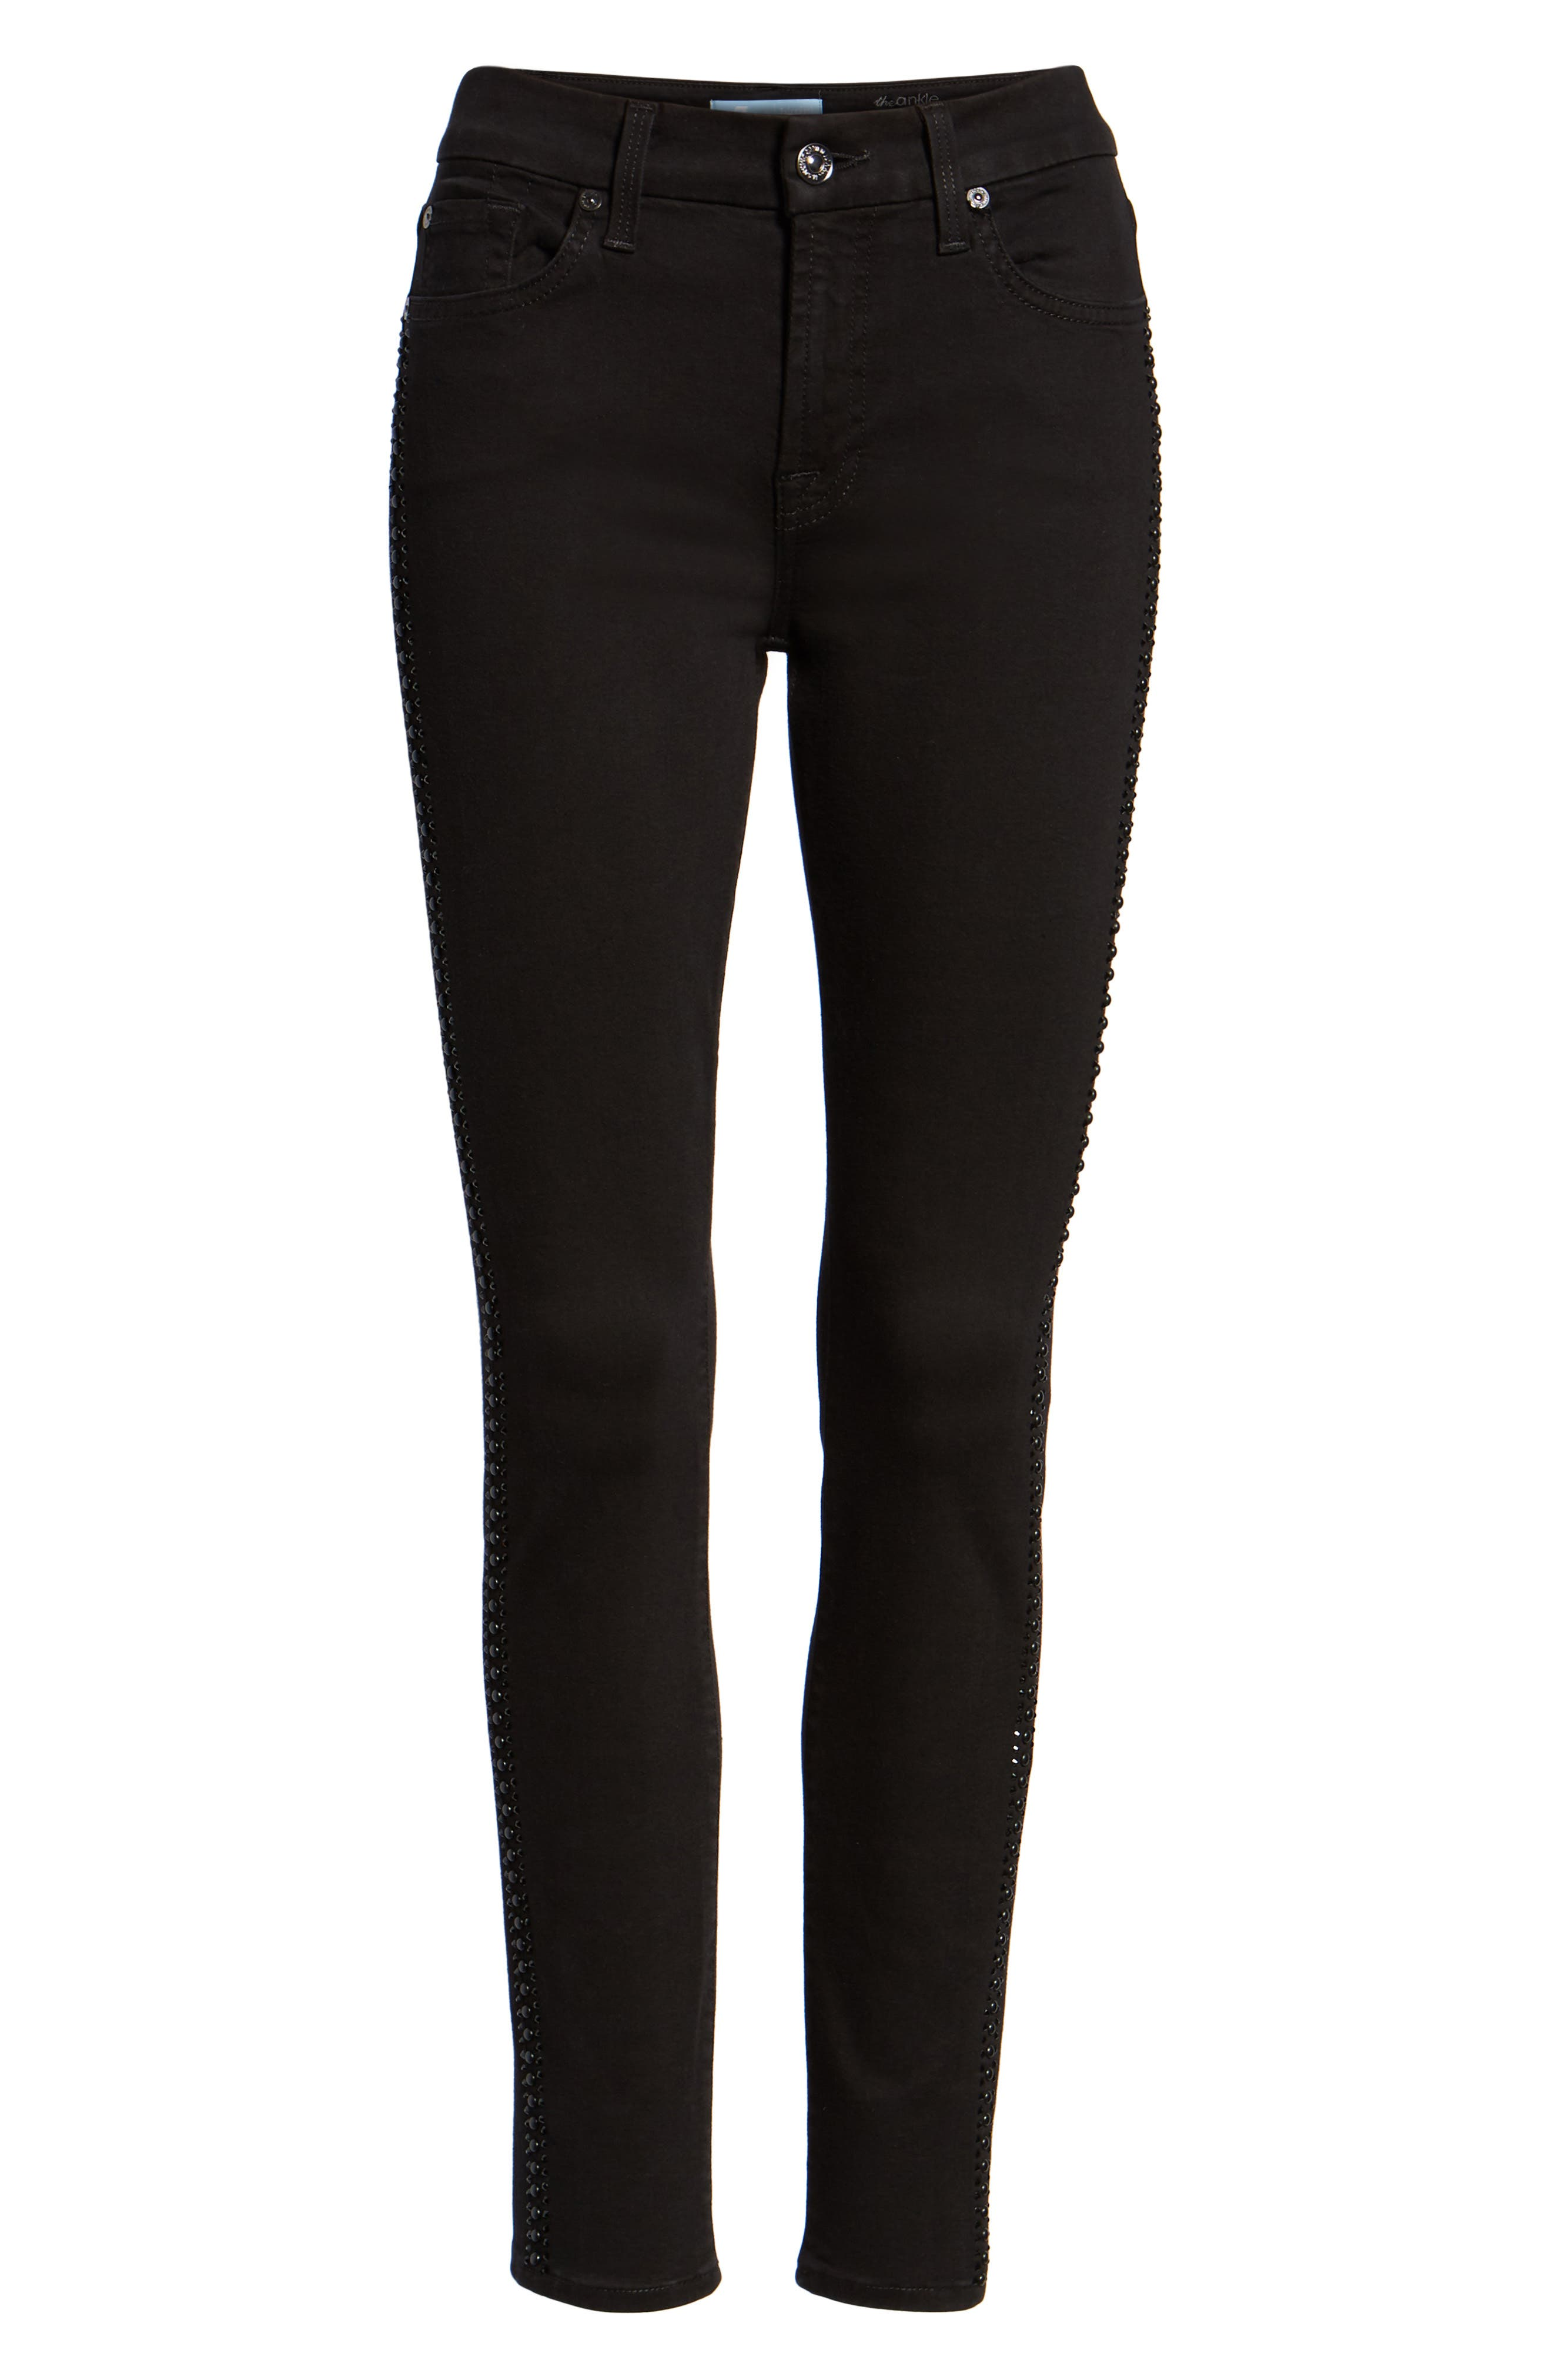 b(air) Coated Ankle Skinny Jeans,                             Alternate thumbnail 7, color,                             BLACK W/ CRYSTALS